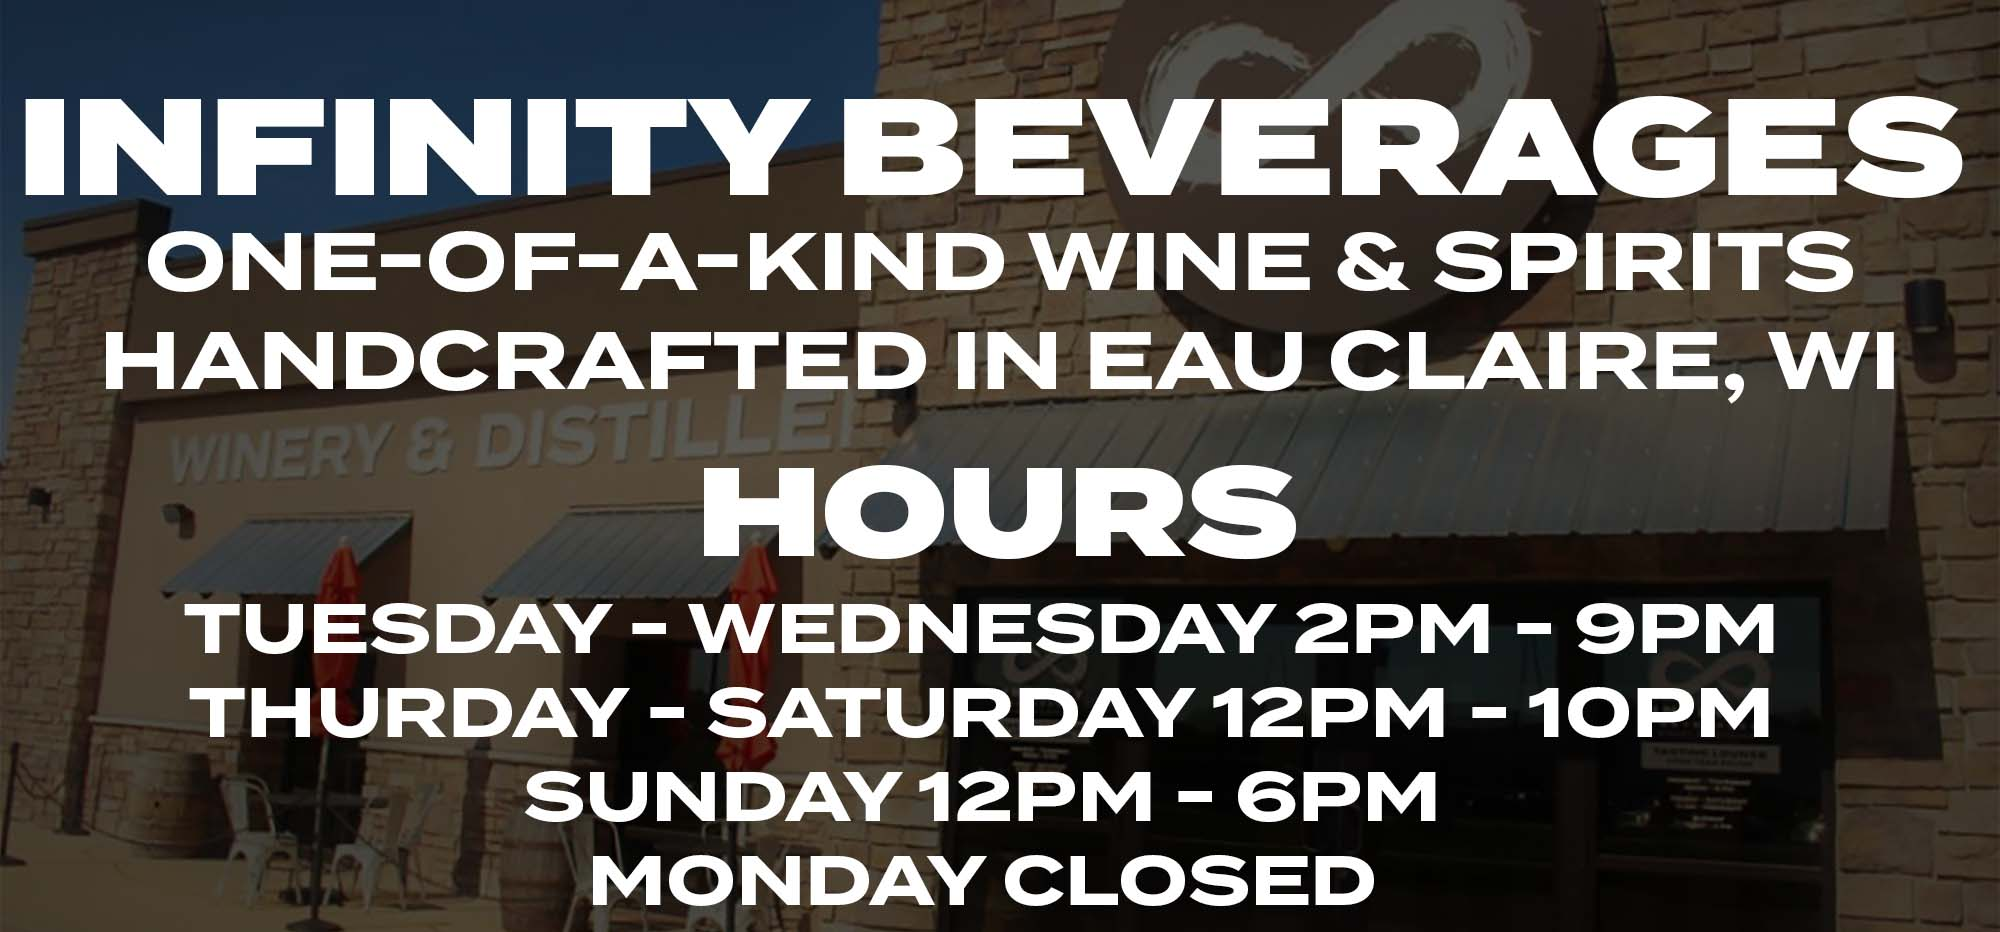 New Hours 5.28.2020